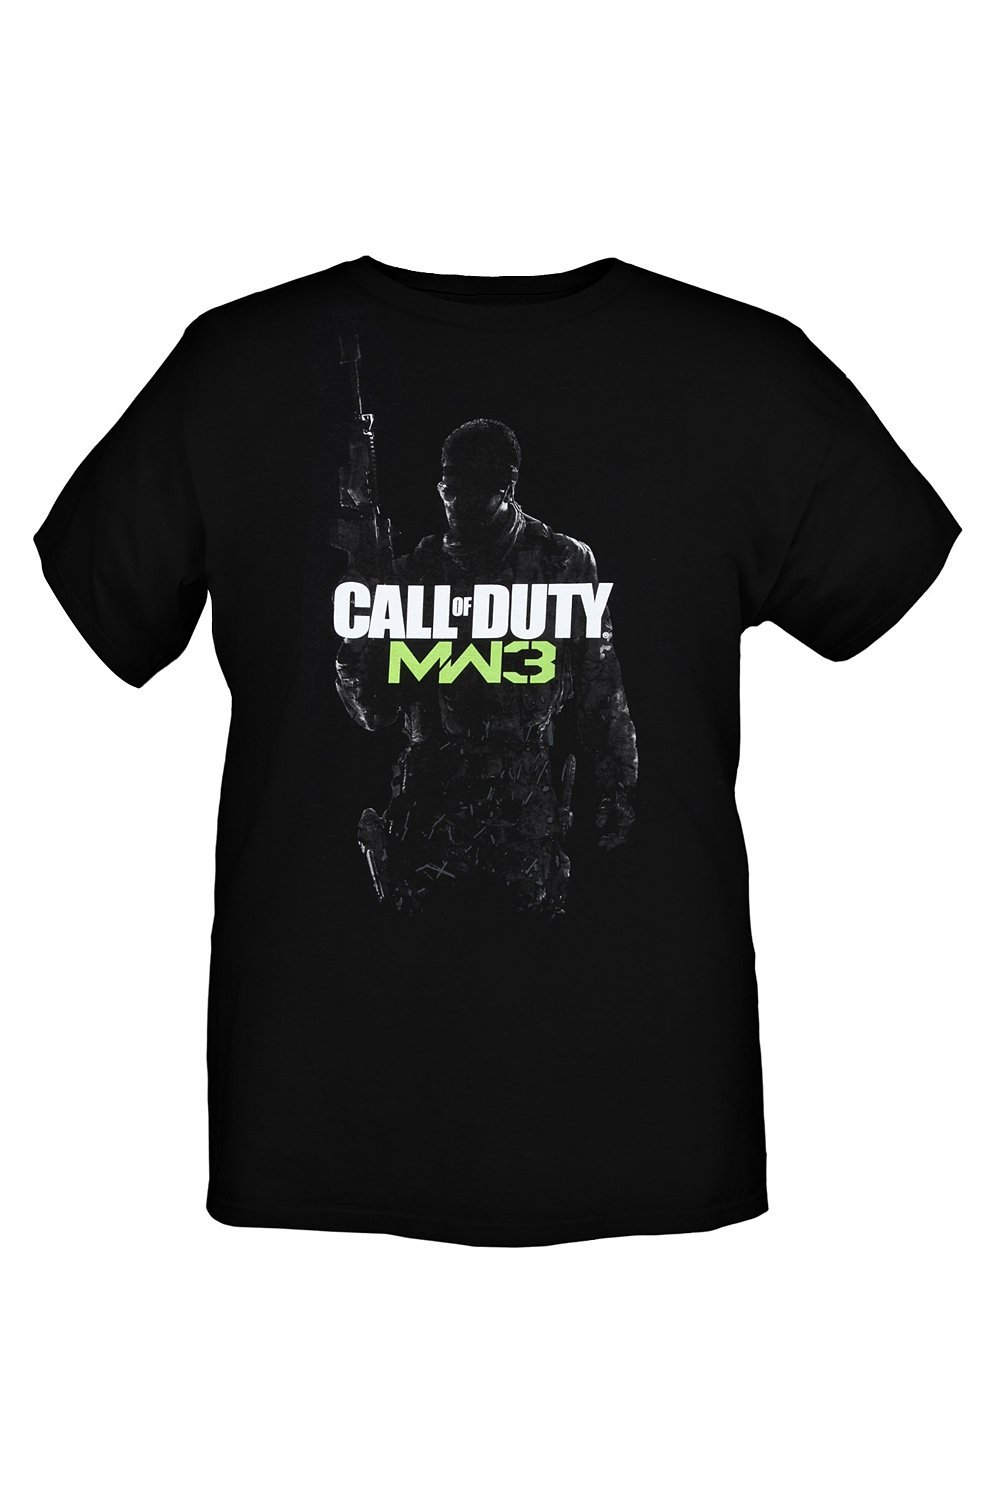 Call Of Duty: Modern Warfare 3 Soldier T-Shirt